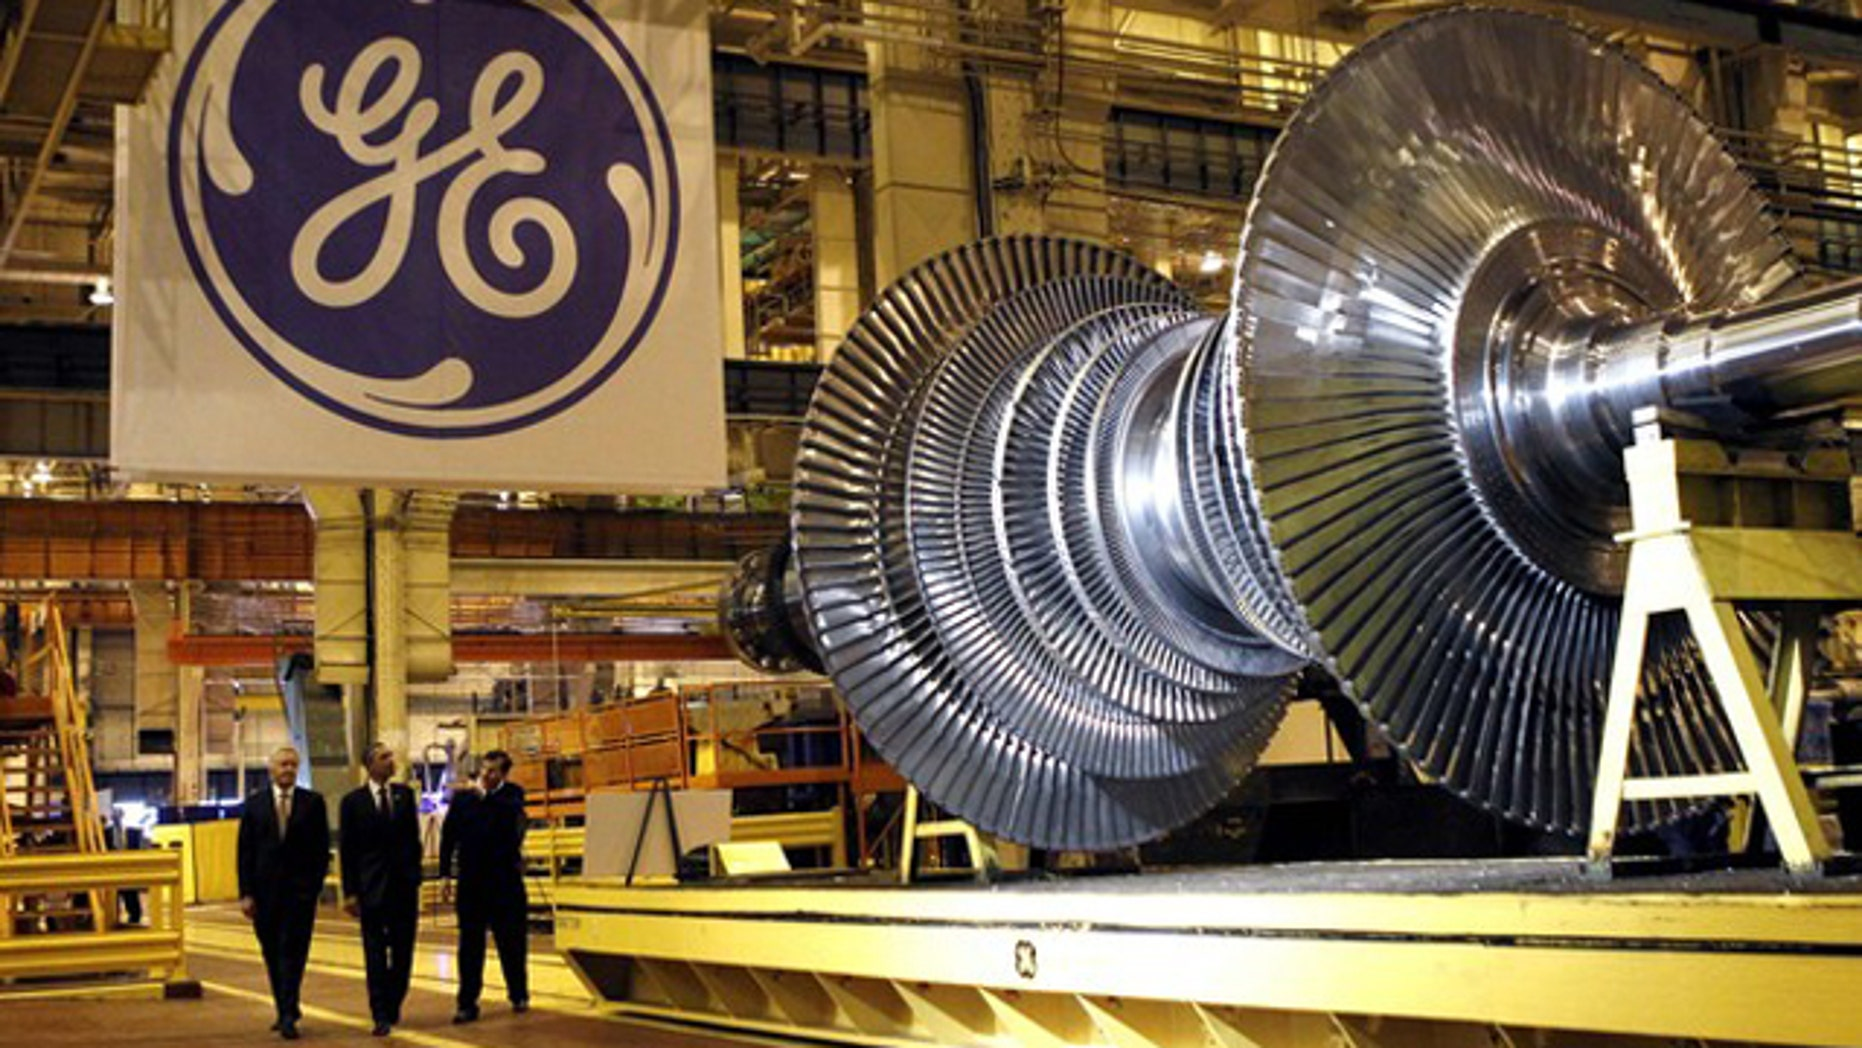 President Obama, center, passes a turbine as he tours General Electric's birthplace in Schenectady, N.Y., Jan. 21. Flanking Obama are GE CEO Jeffrey Immelt, left, and plant manager Kevin Sharkey.